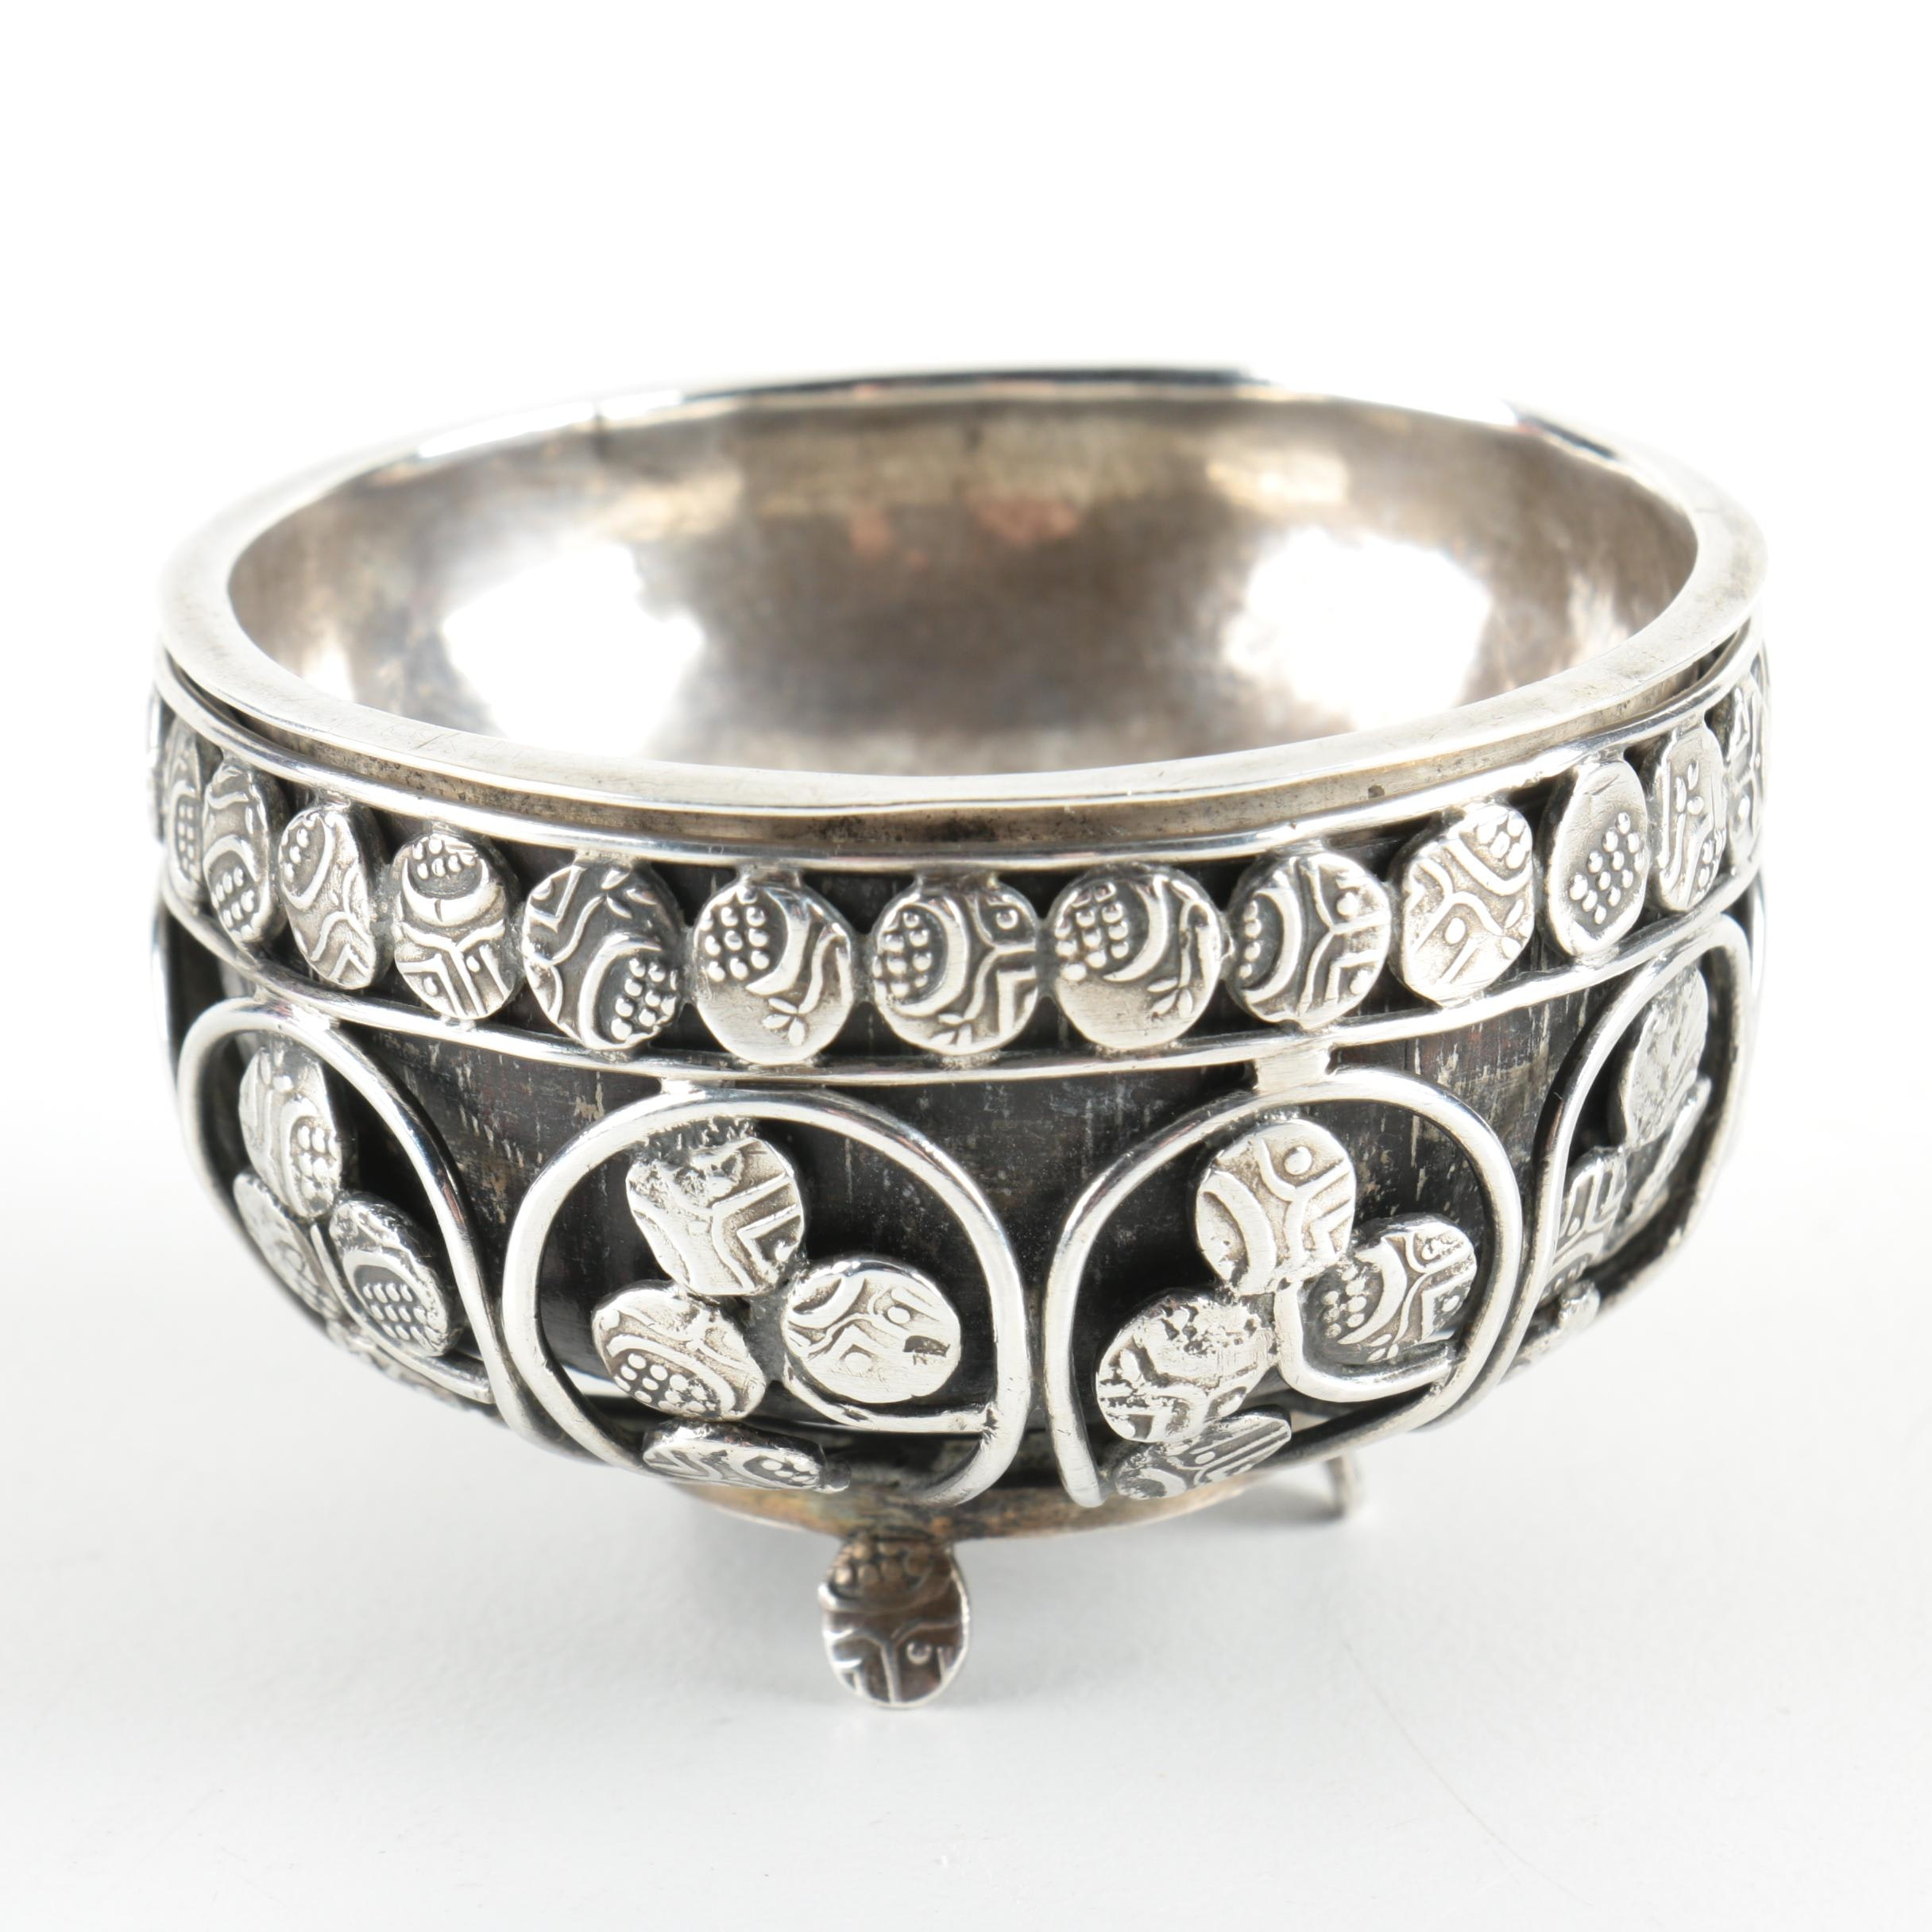 Openwork Sterling Silver Salt Cellar with Coconut Shell Liner